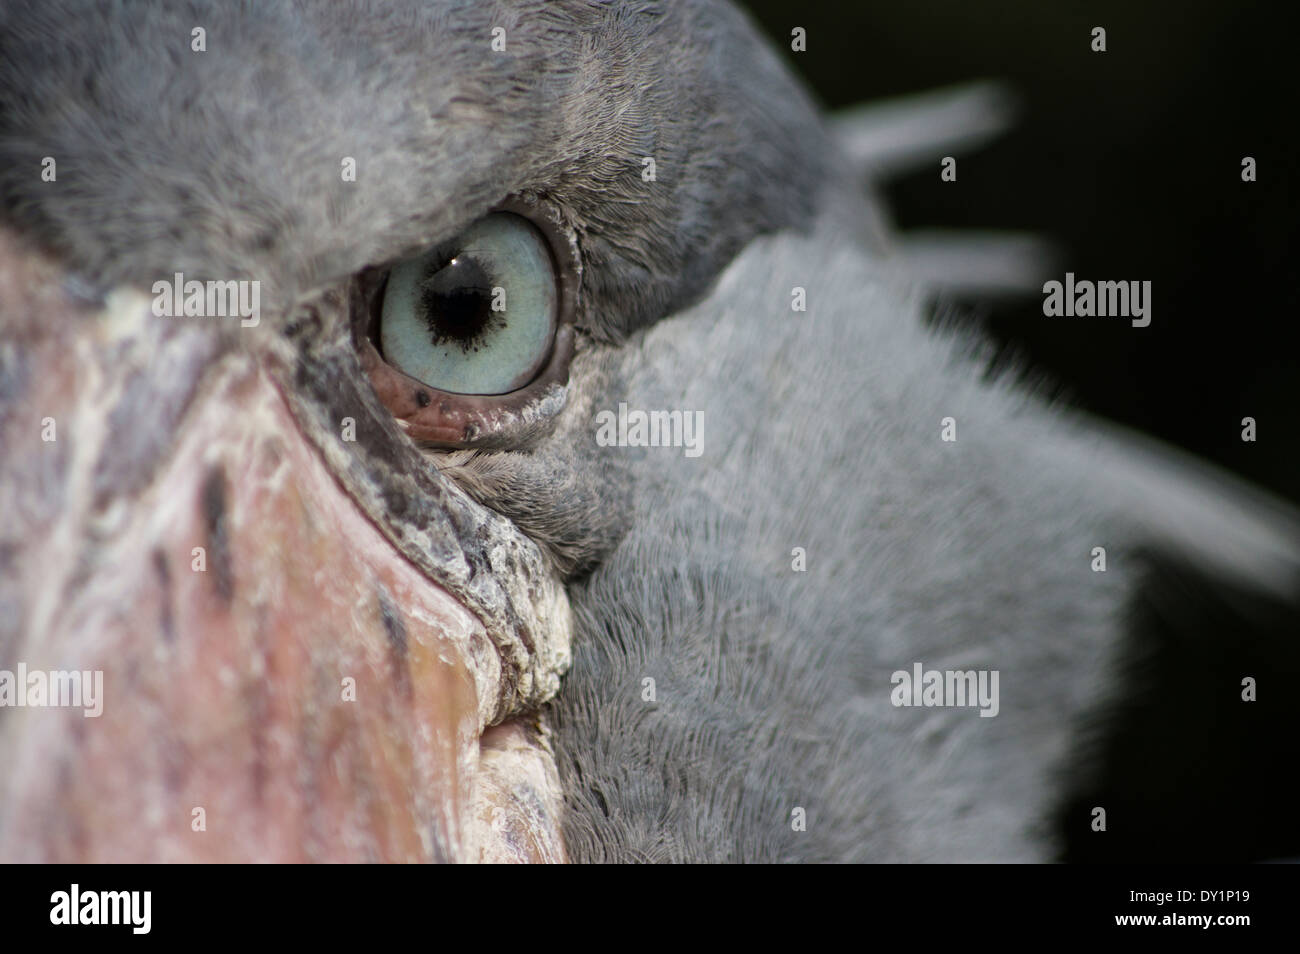 Shoebill, Balaeniceps rex African bird at Ueno Zoo, Tokyo, Japan - Stock Image